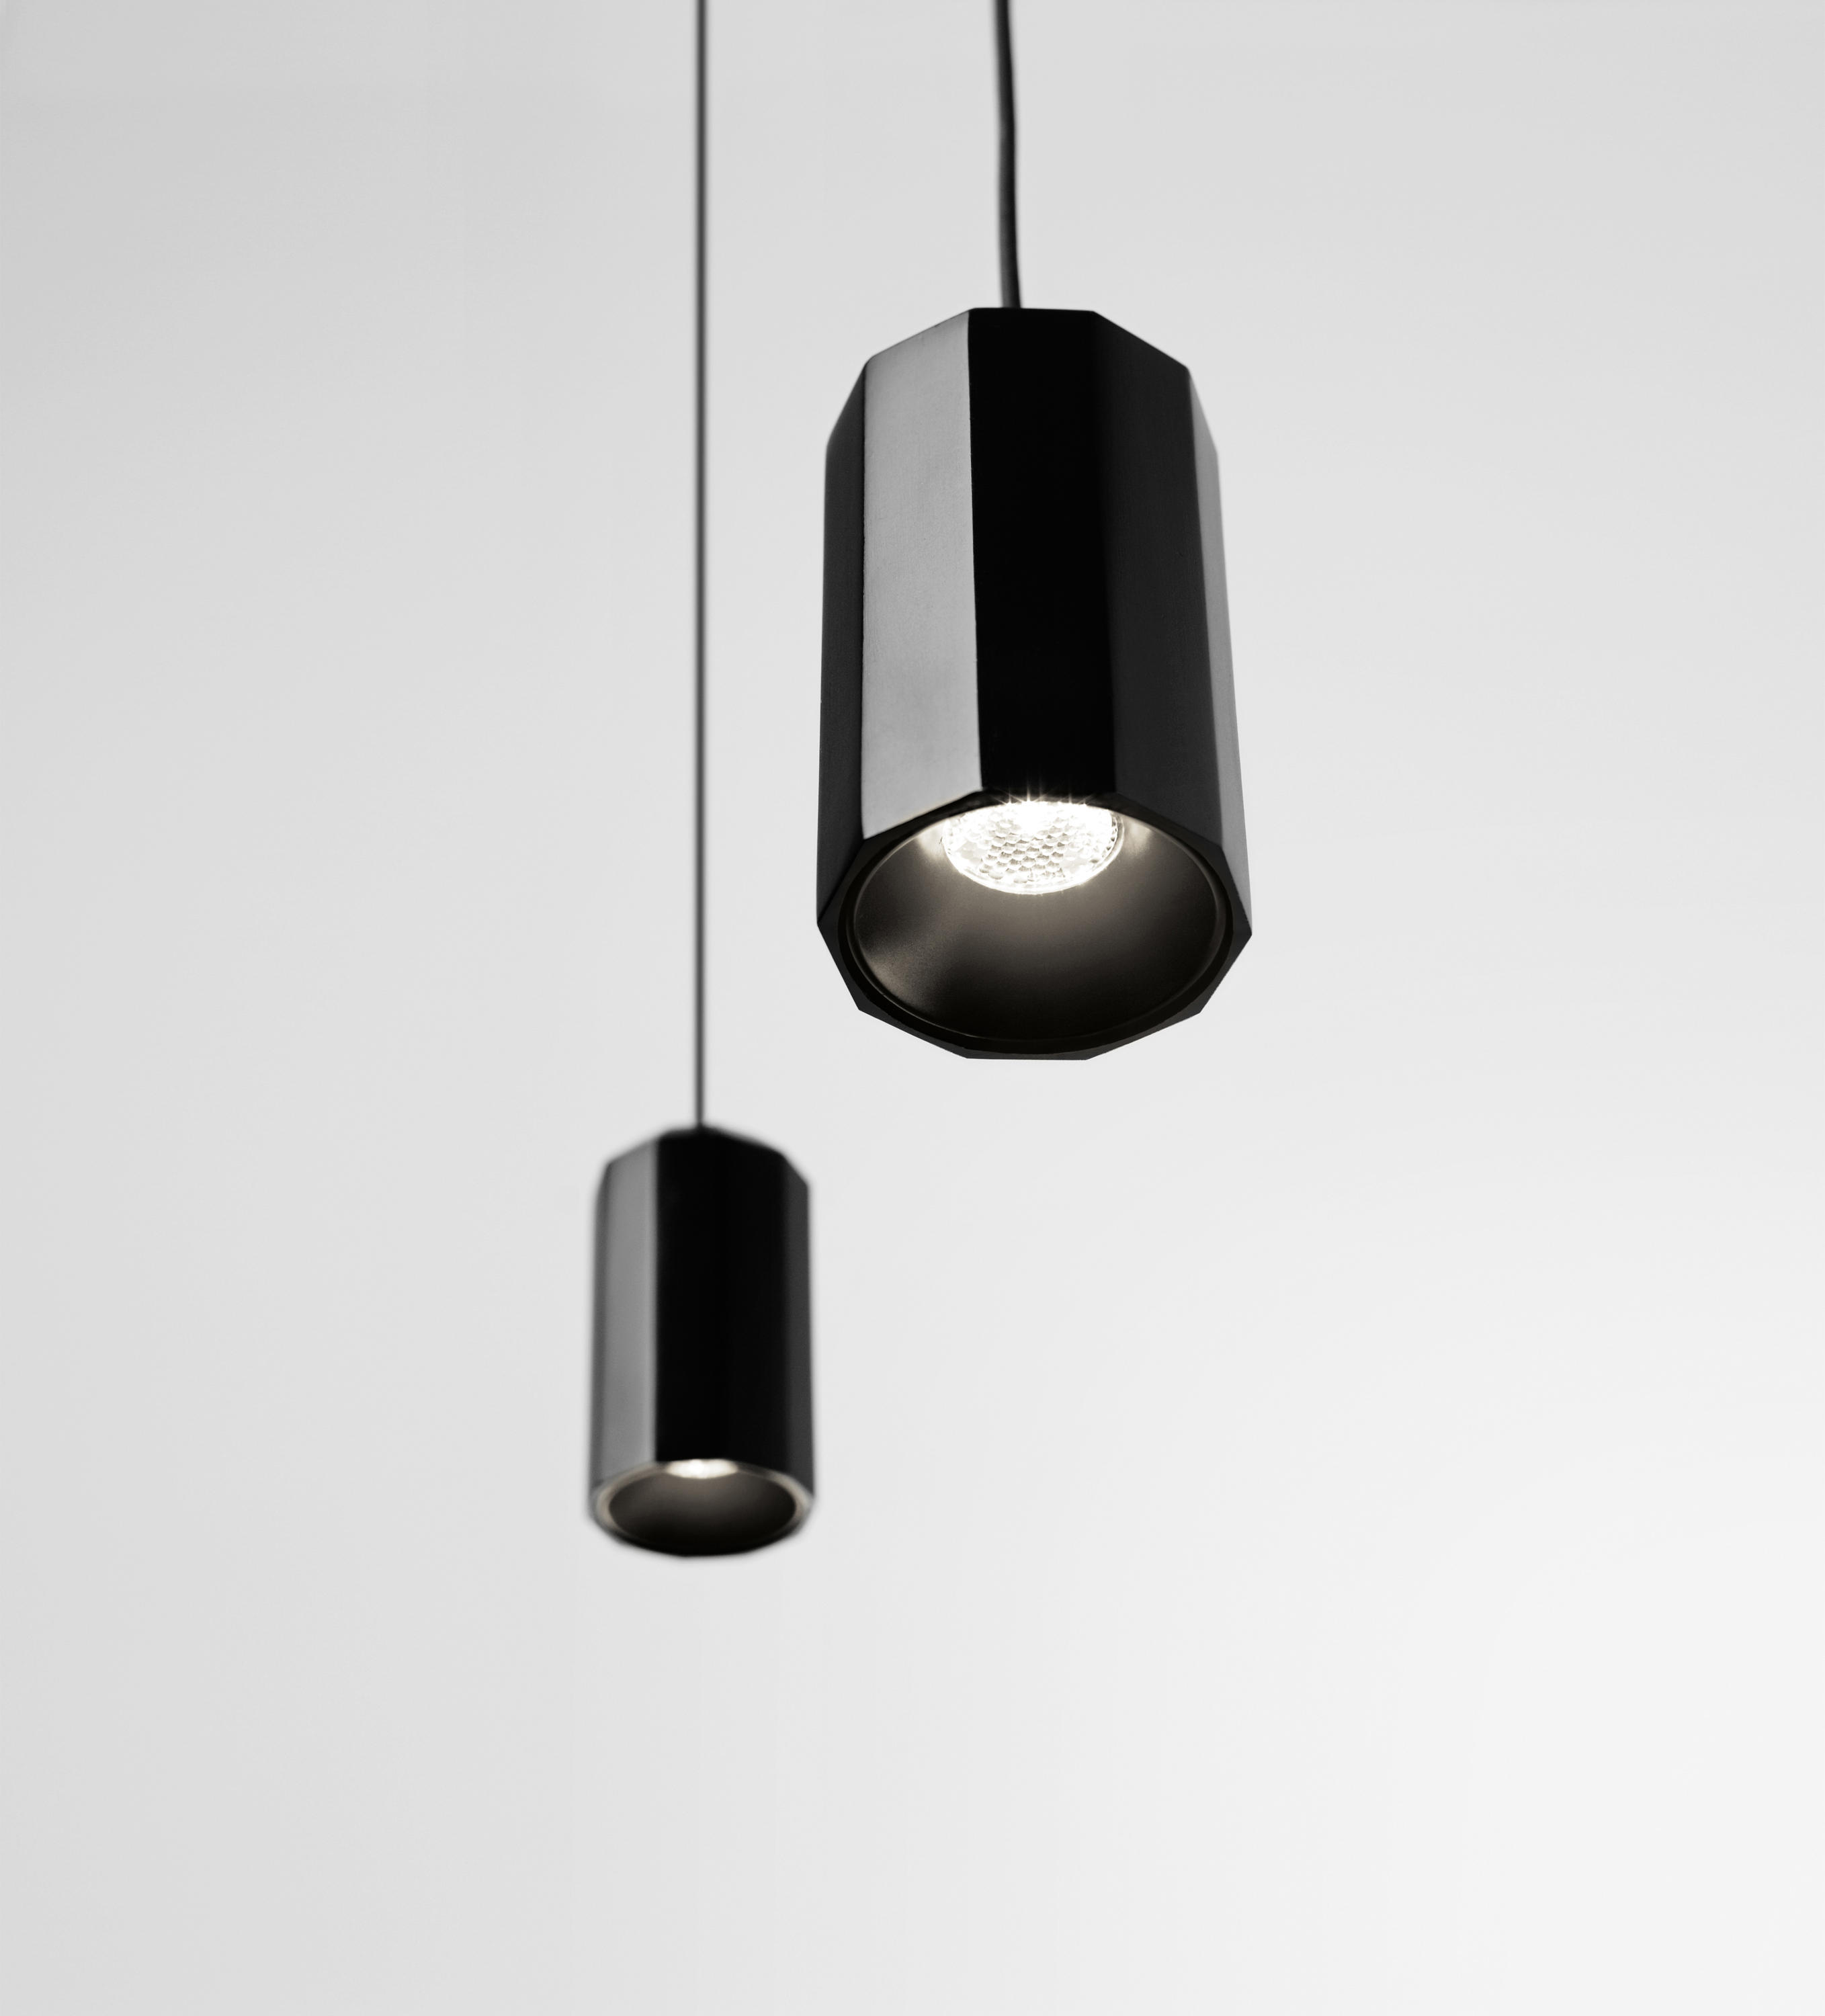 wireflow lineal 0338 pendant lamp general lighting from vibia architonic. Black Bedroom Furniture Sets. Home Design Ideas